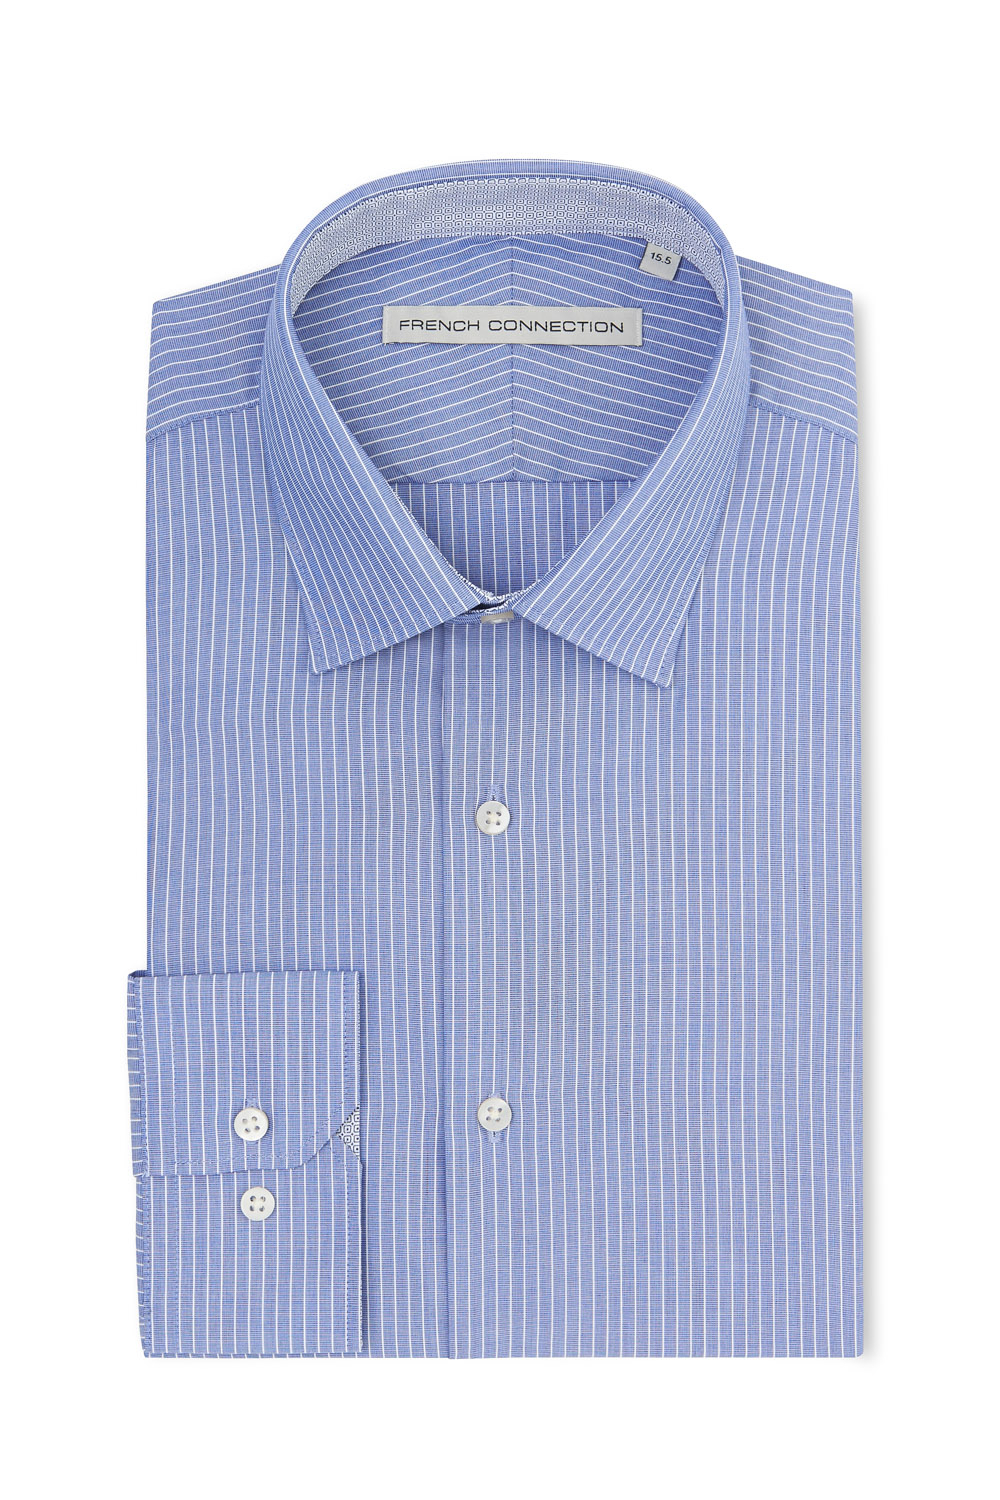 French connection slim fit blue and white single cuff White french cuff shirt slim fit